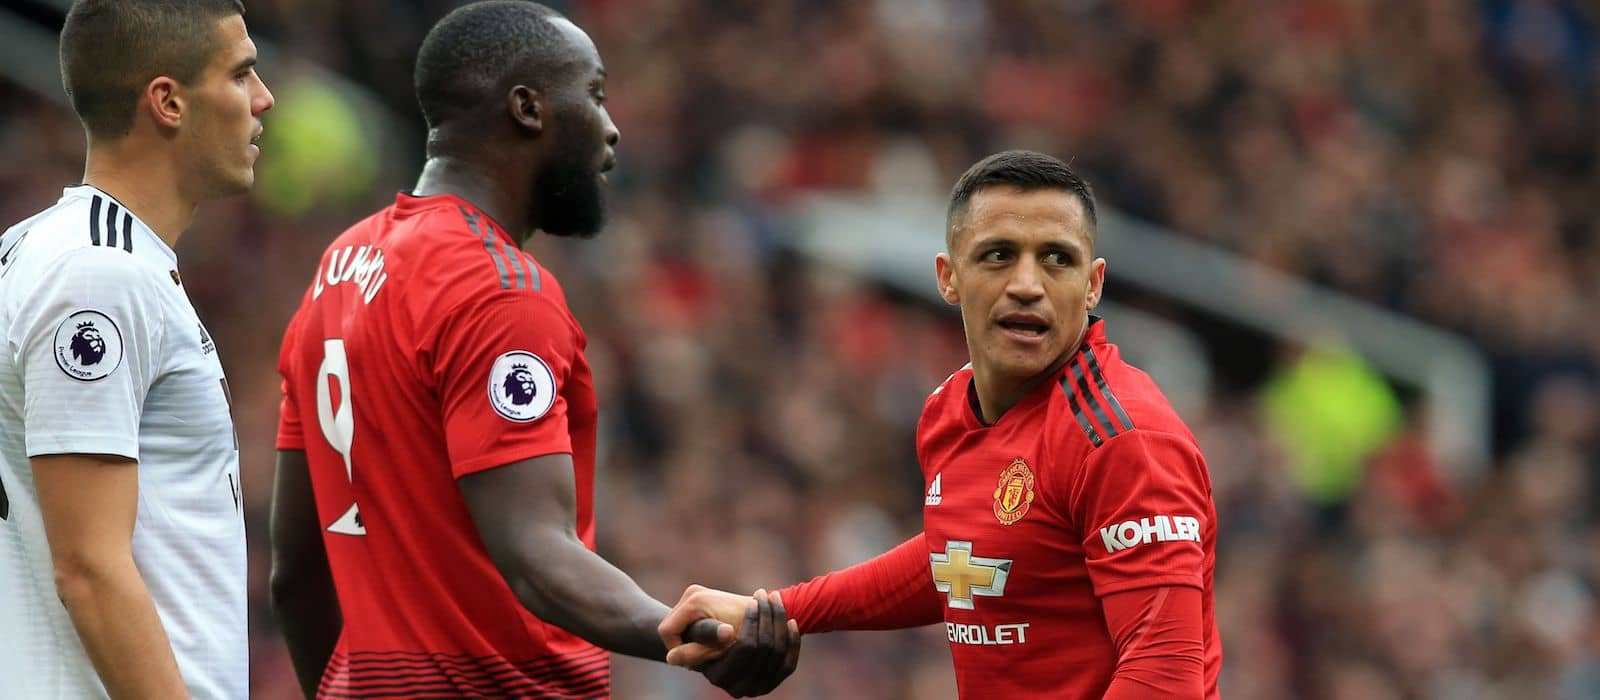 Confusion emerges over Inter Milan's interest in Alexis Sanchez